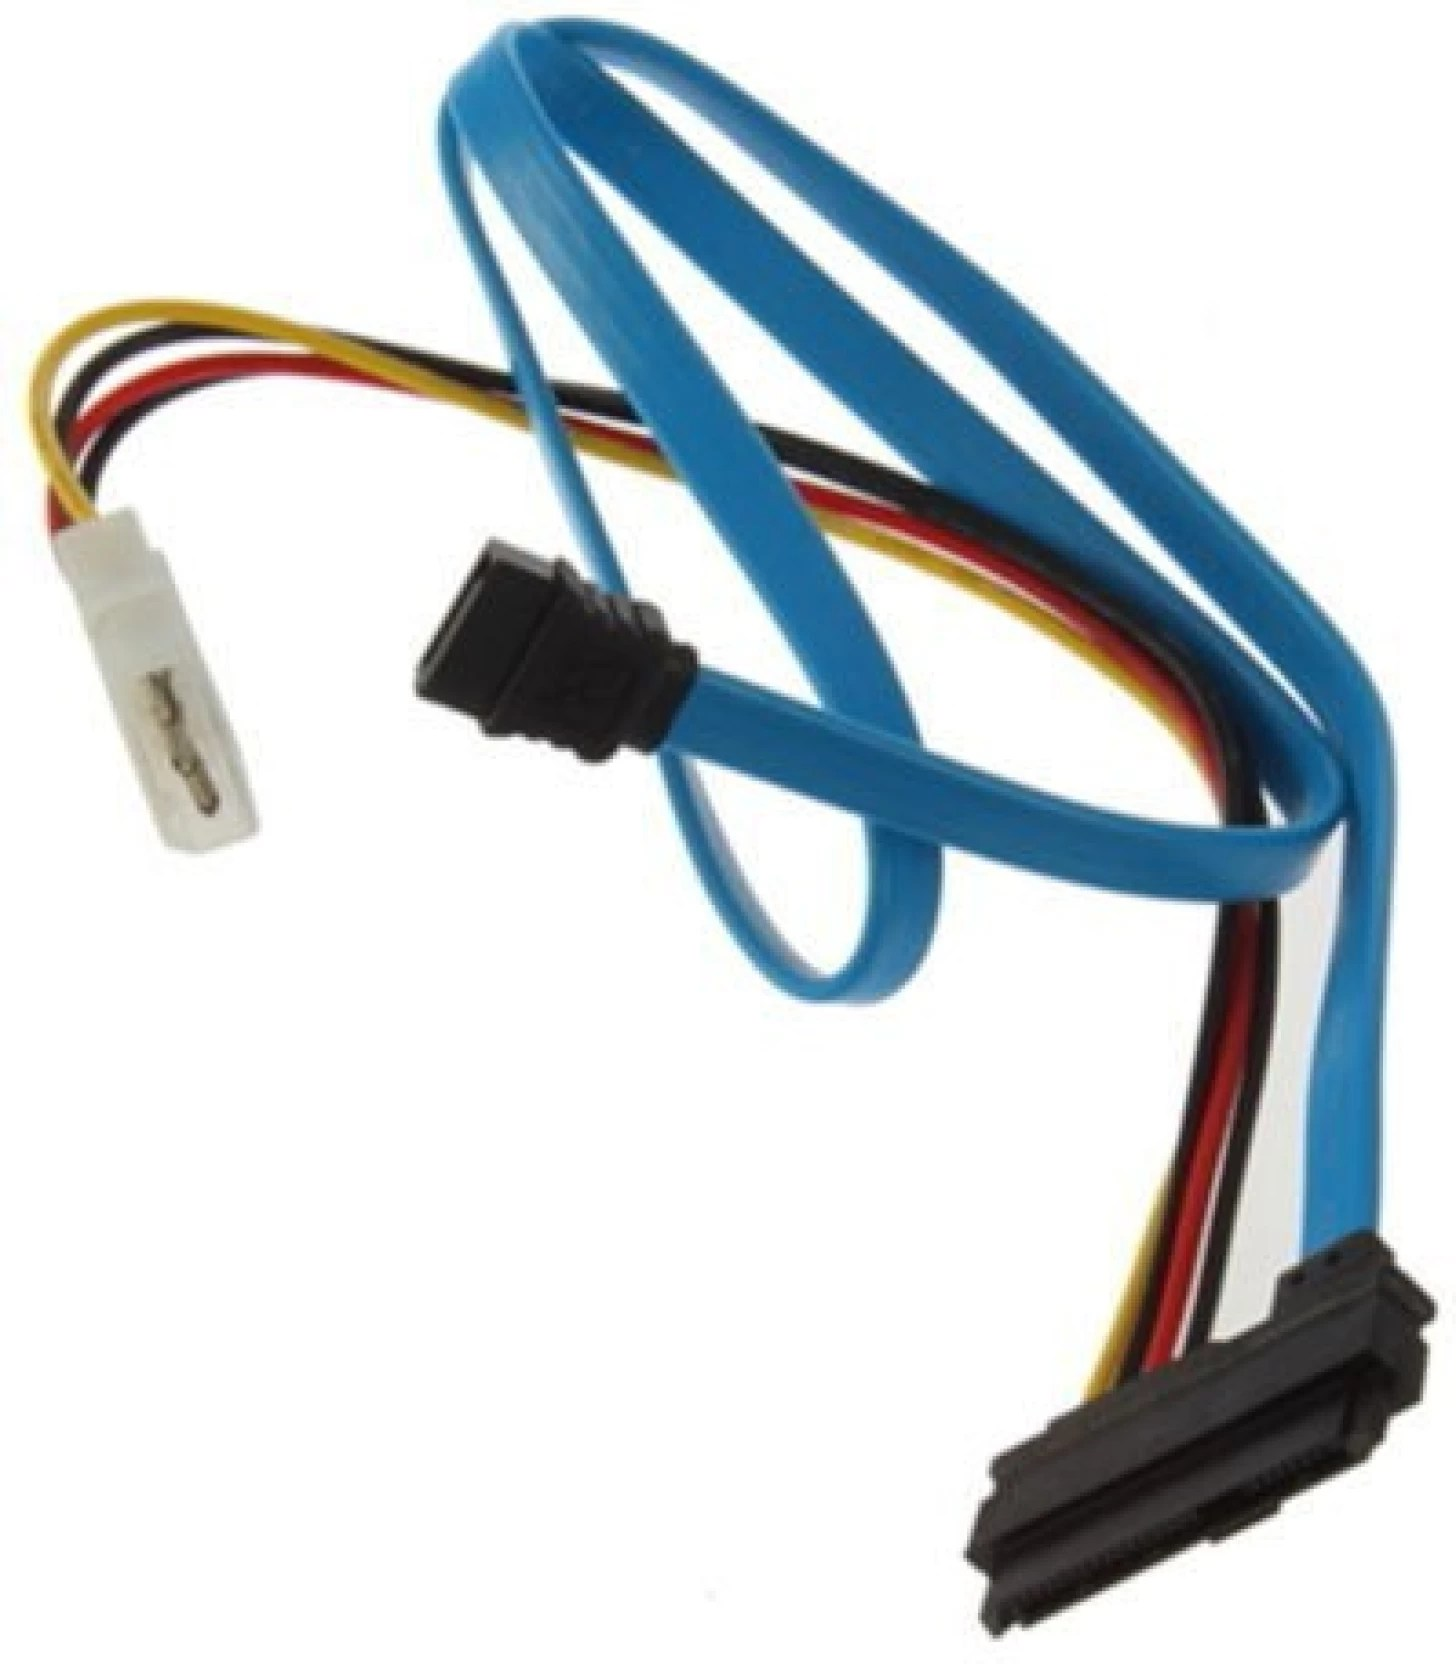 small resolution of buyyart tv out cable new 1pcs high quality 7 pin sata serial ata to sas 29 pin 4 pin cable male connector adapter blue black for computer